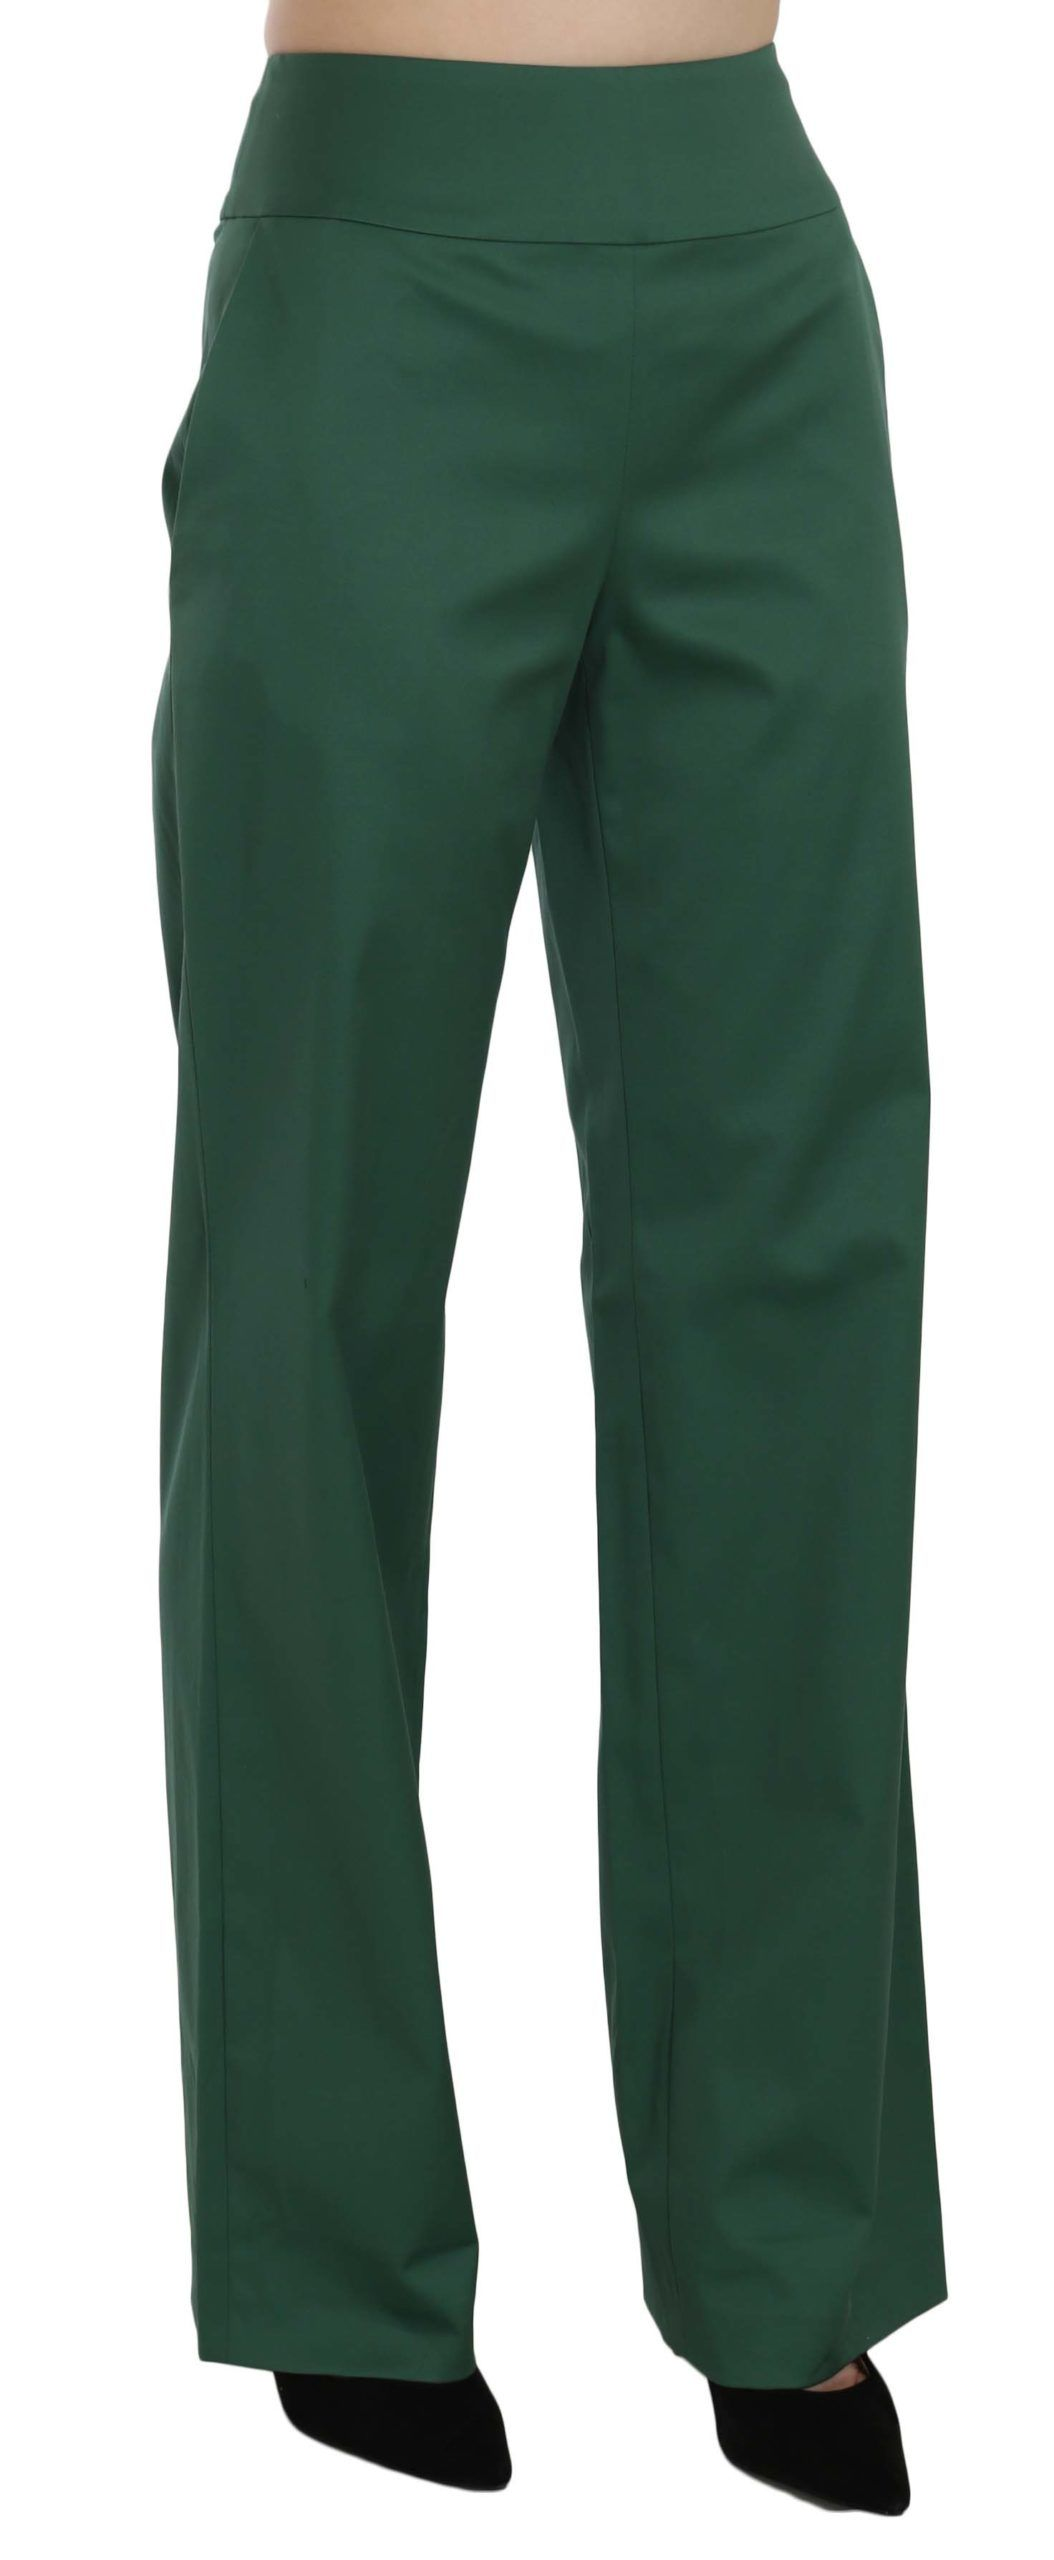 Just Cavalli Green High Waist Straight Formal Trousers Pants